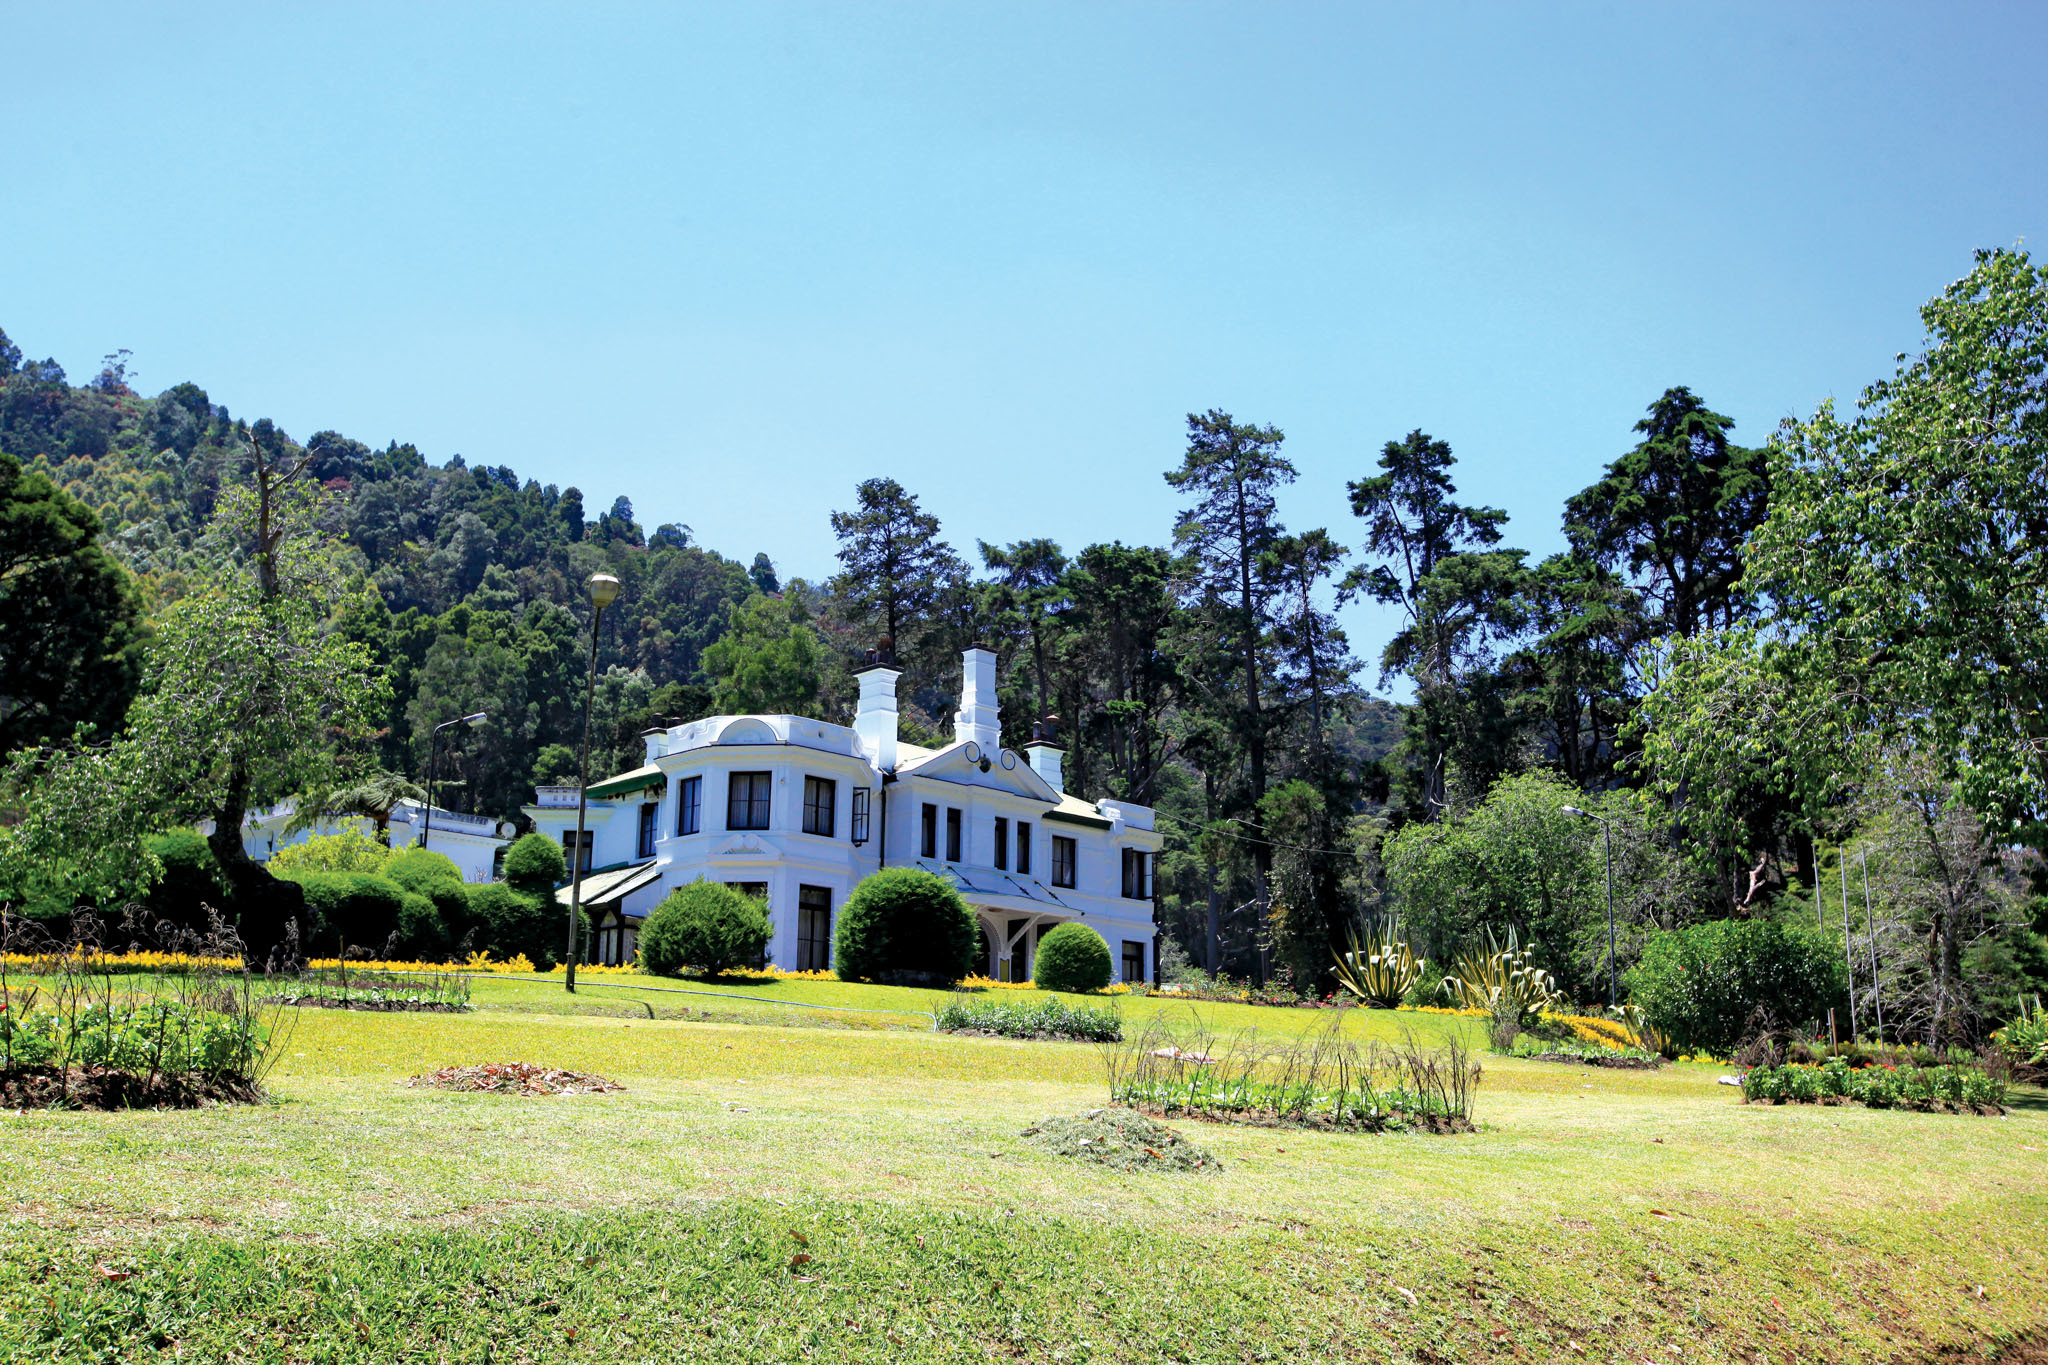 Queen's Cottage in Nuwara Eliya